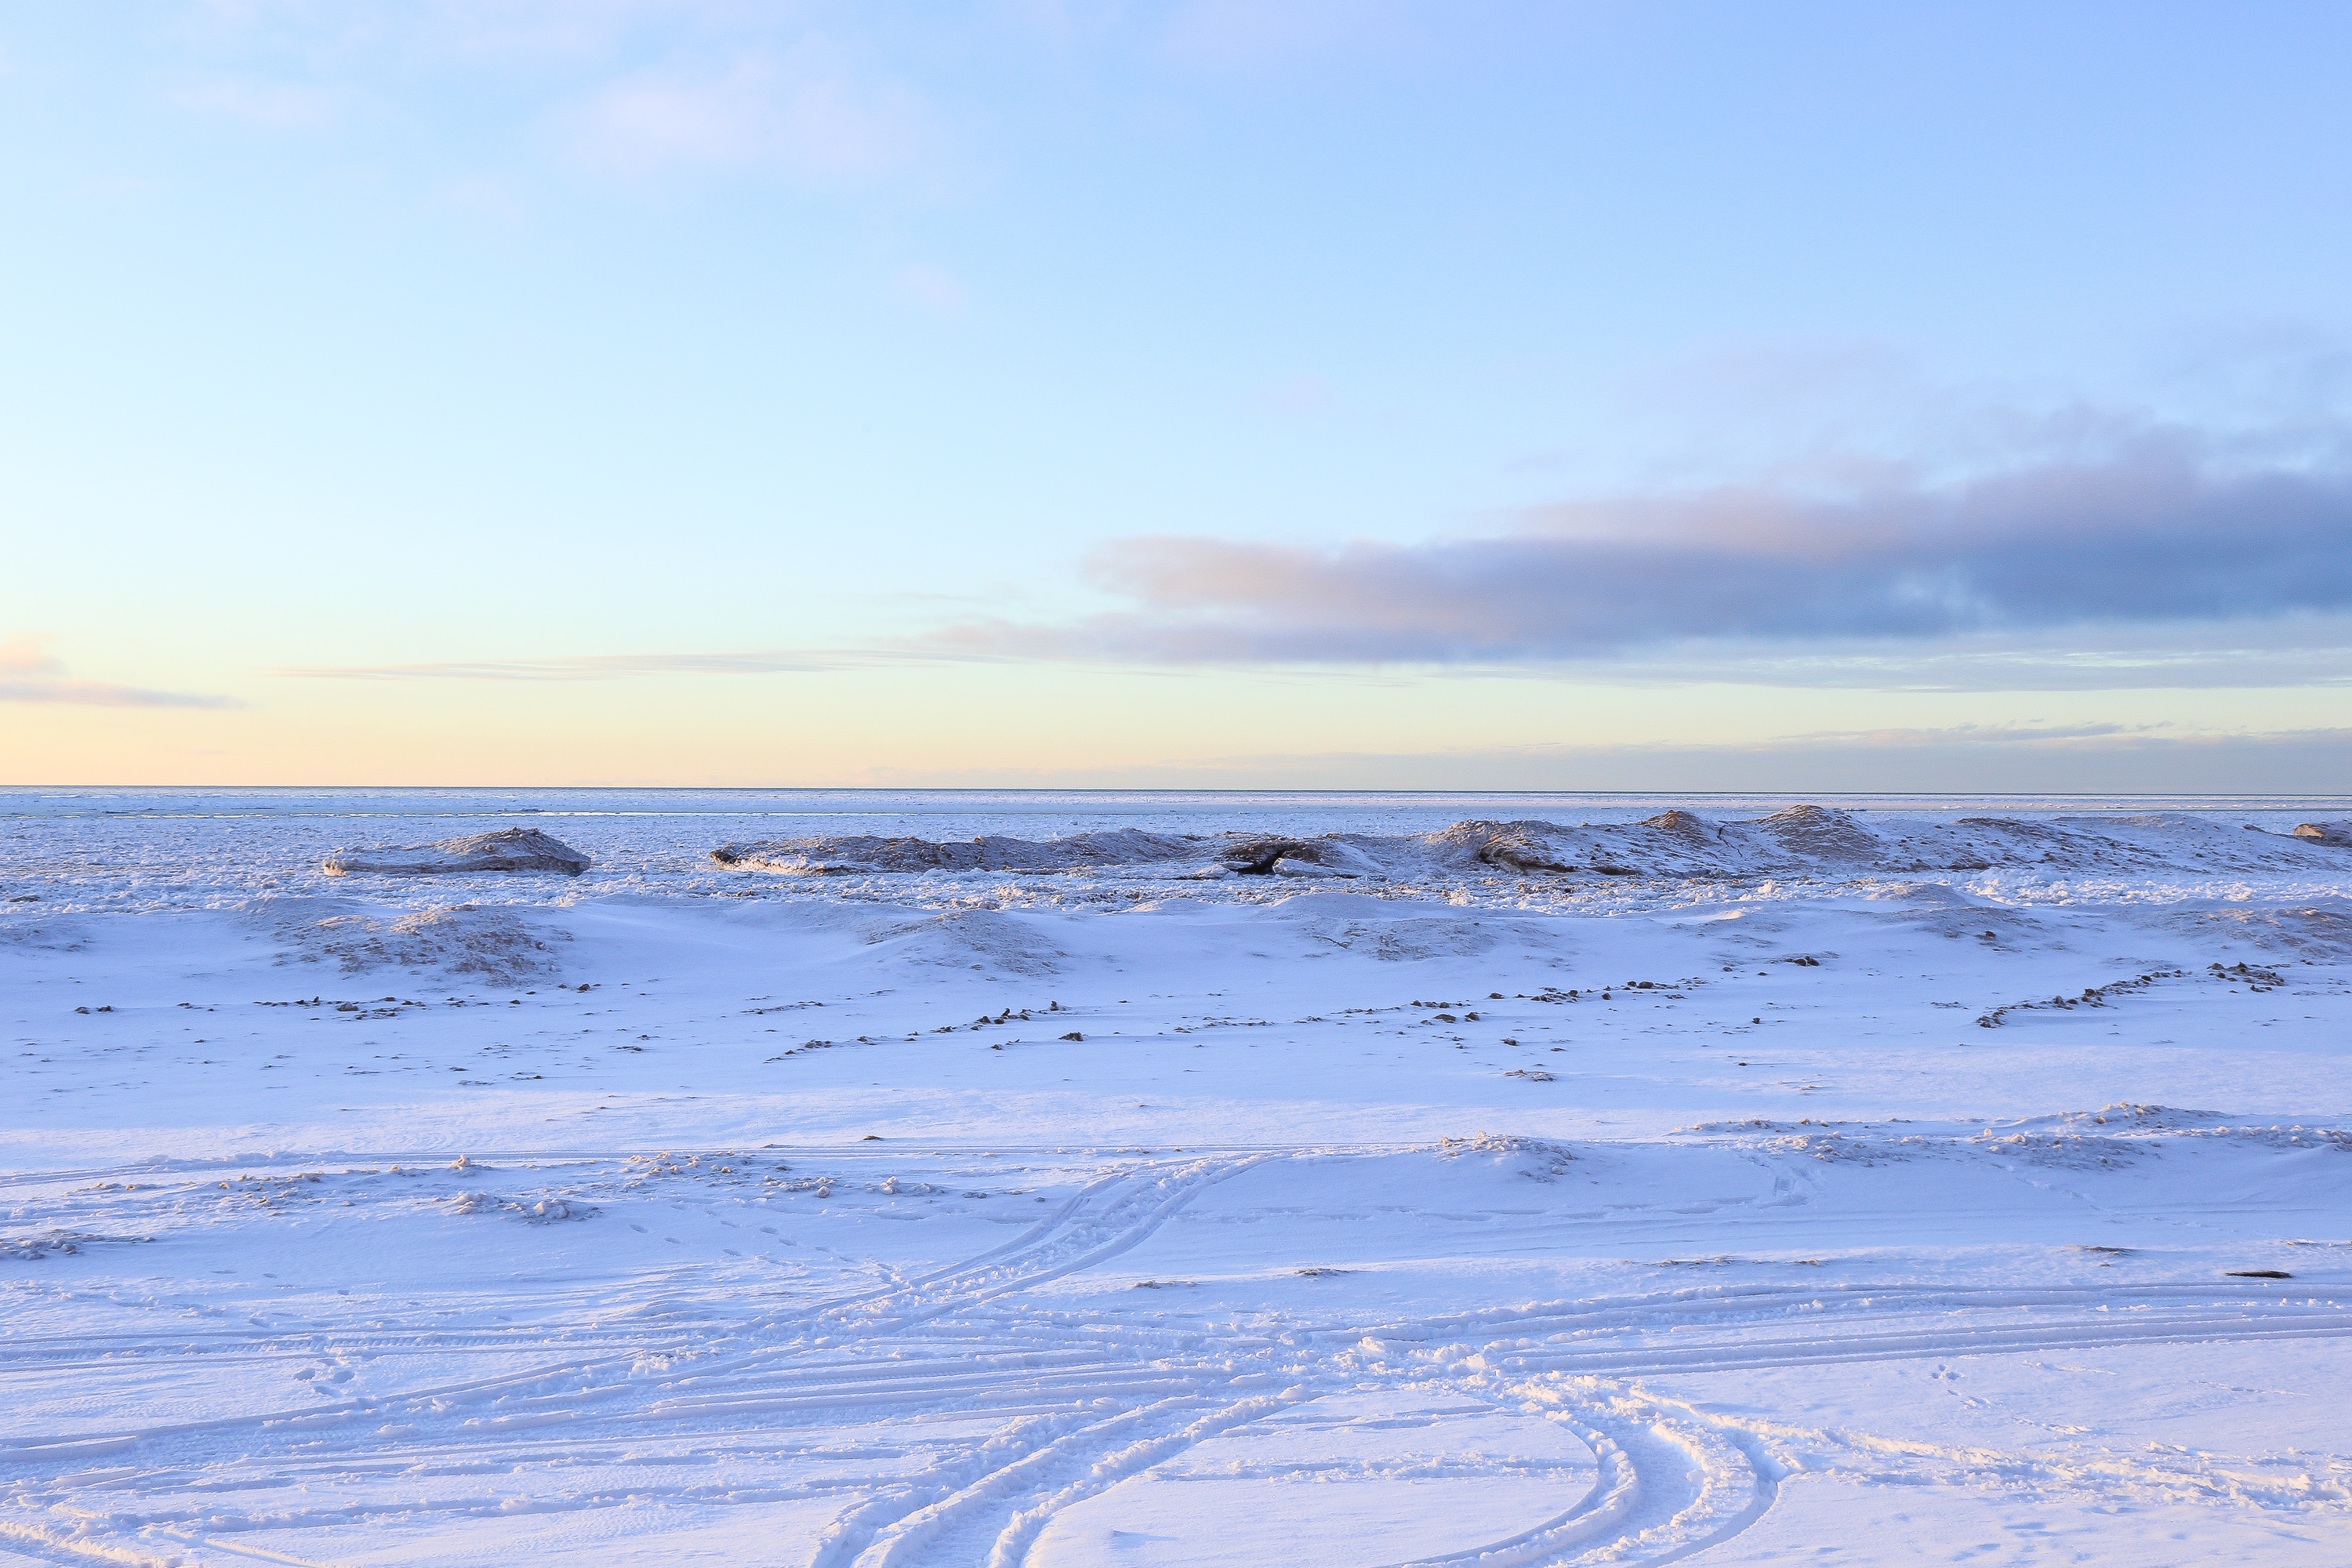 Winter landscape photography of snow and ice at Agate Beach, located in Toivola, Michigan.